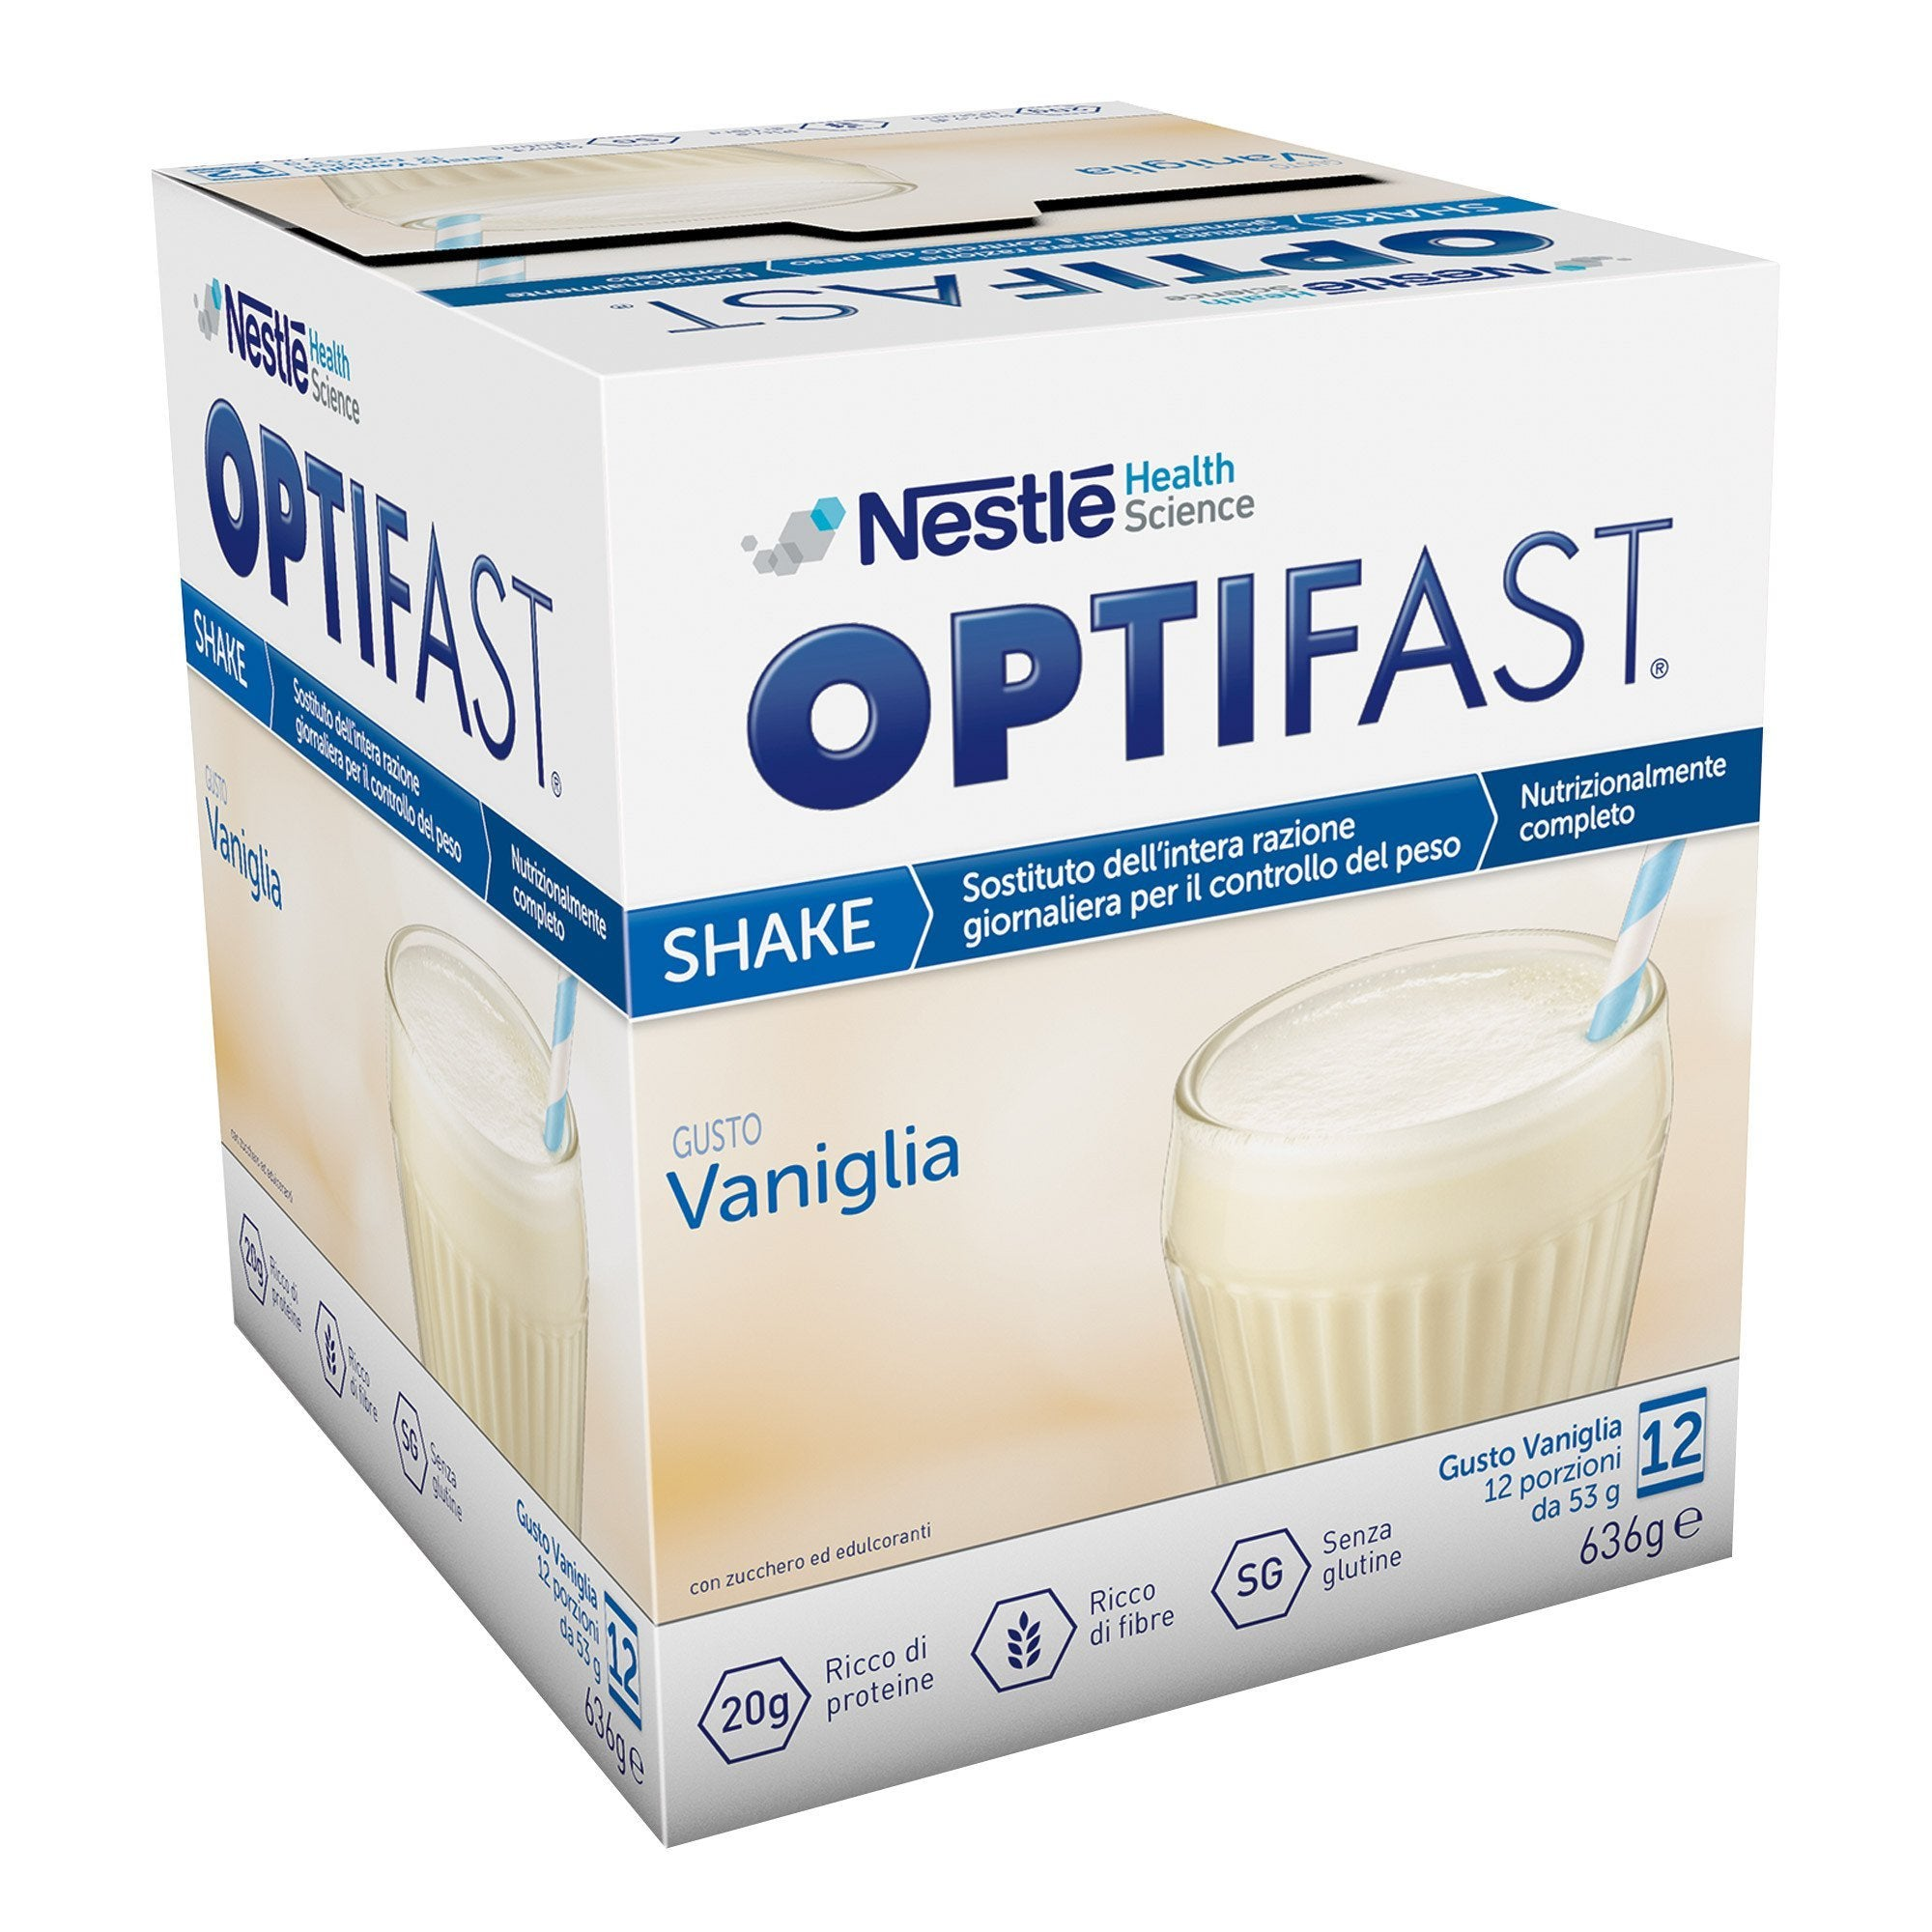 OPTIFAST SHAKE VANIGLIA 12X53G